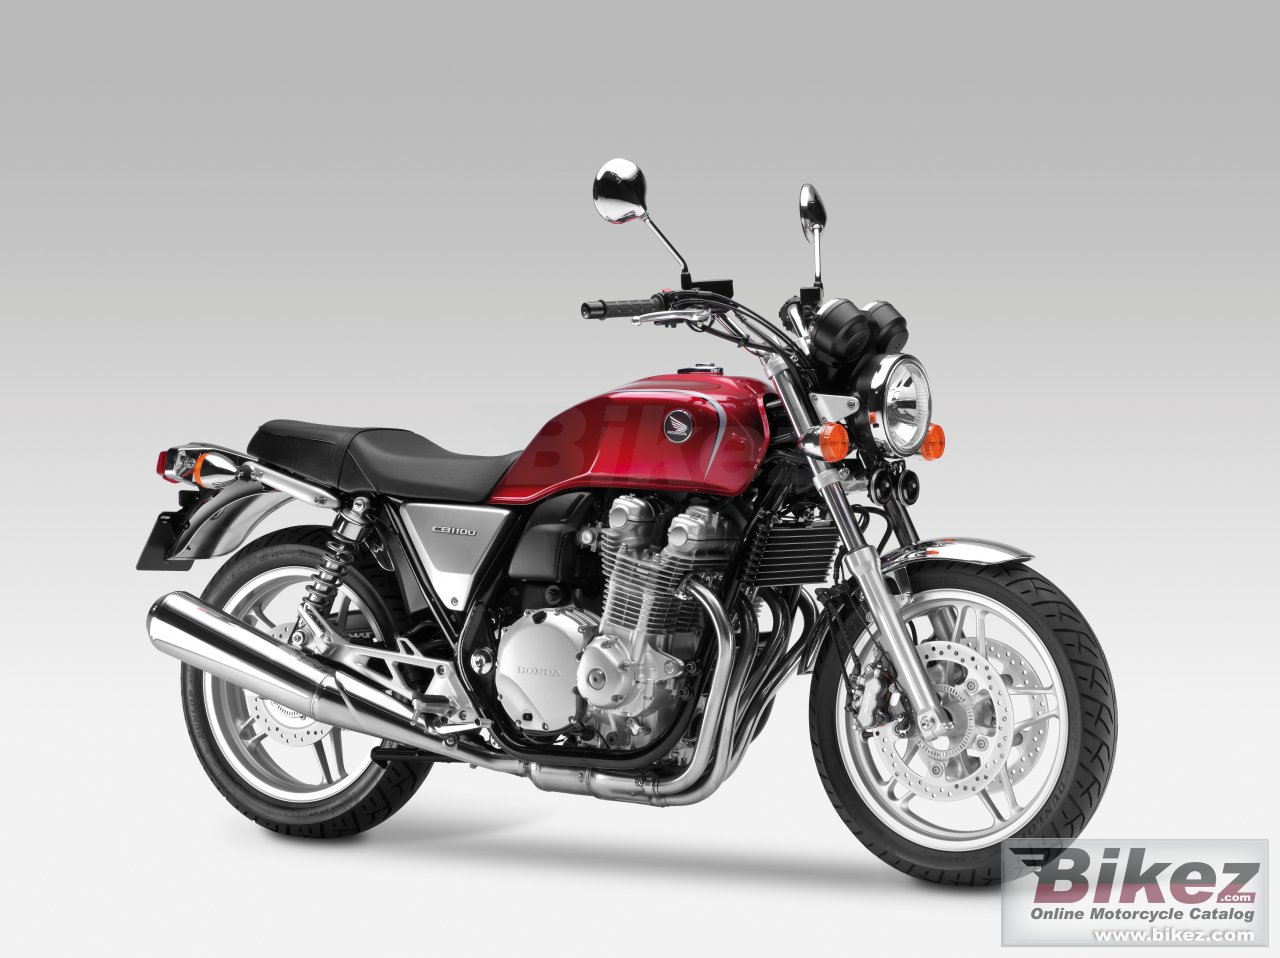 Big Honda cb1100 picture and wallpaper from Bikez.com